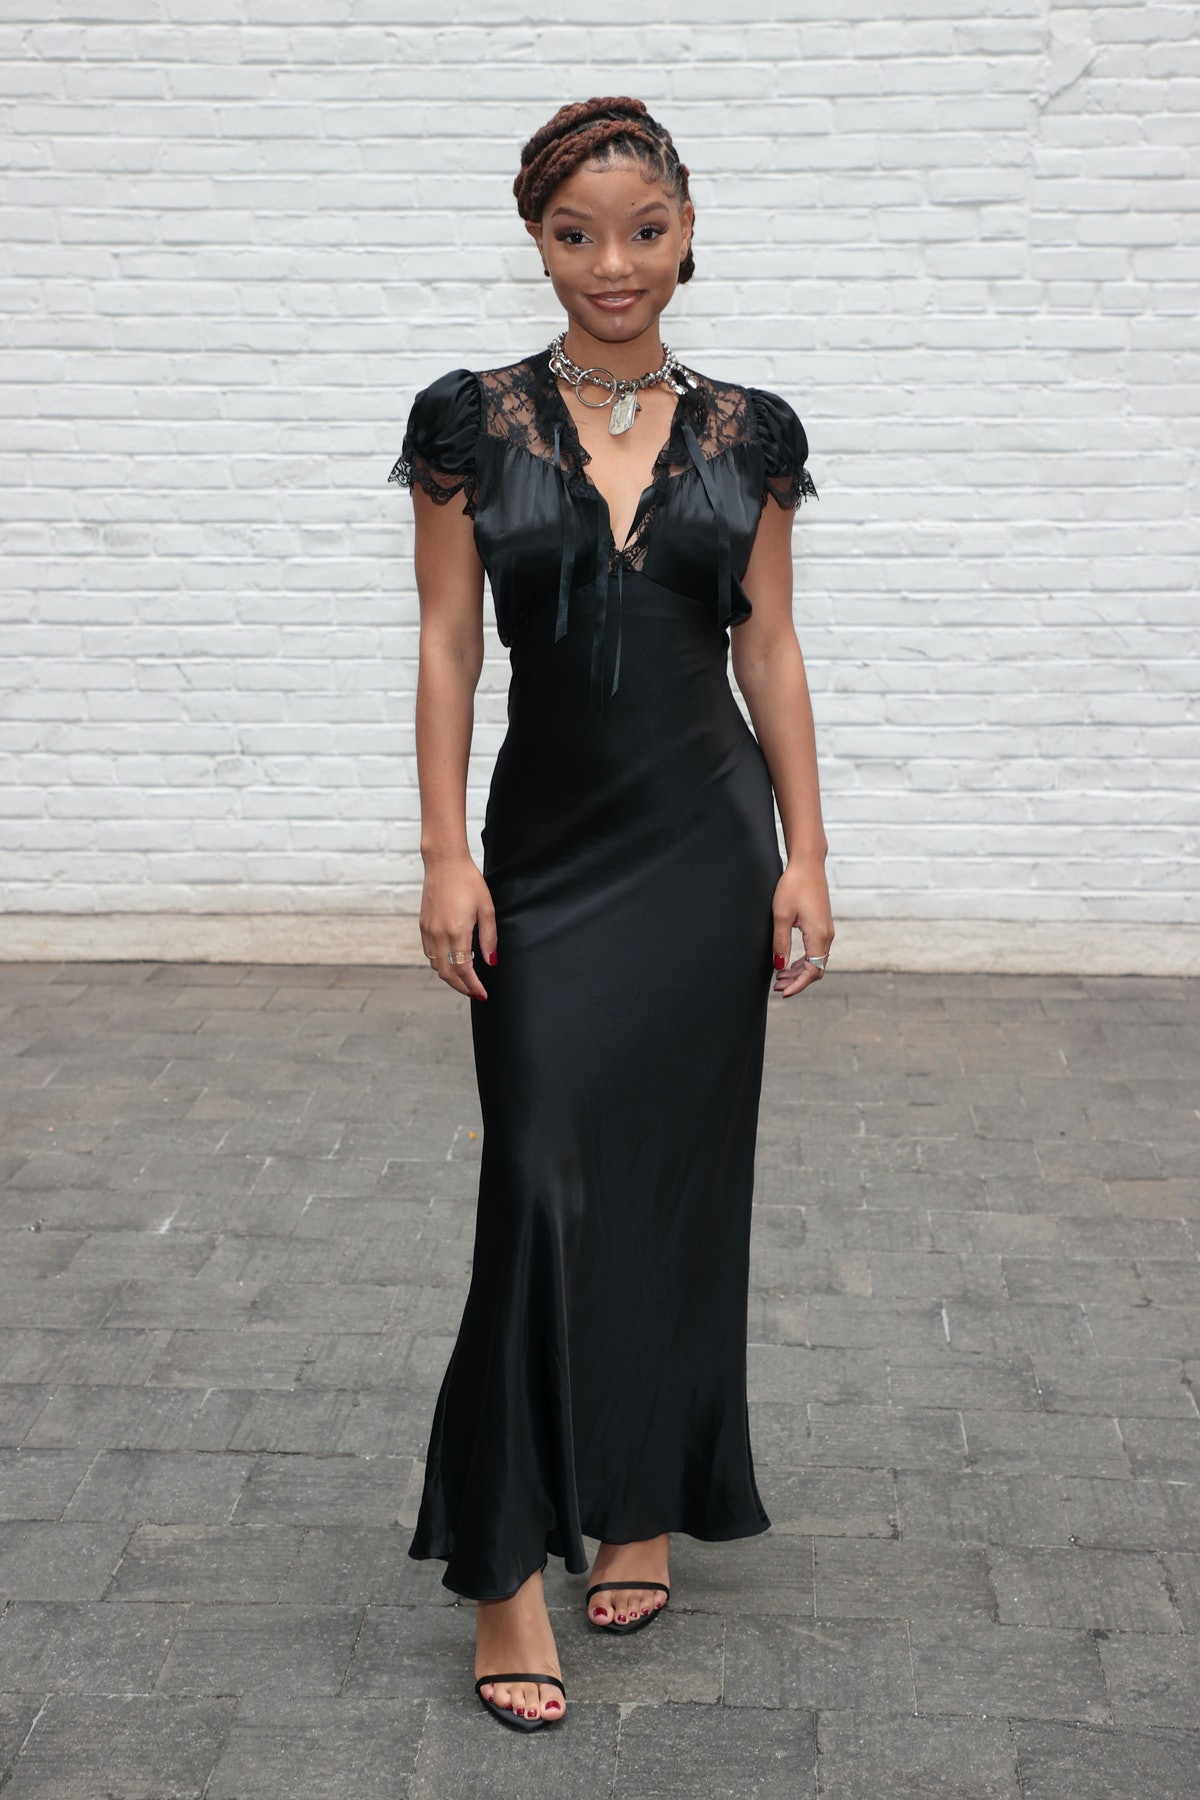 Halle Bailey attends the front row for Rodarte during NYFW: The Show on September 11, 2021 in New Y...